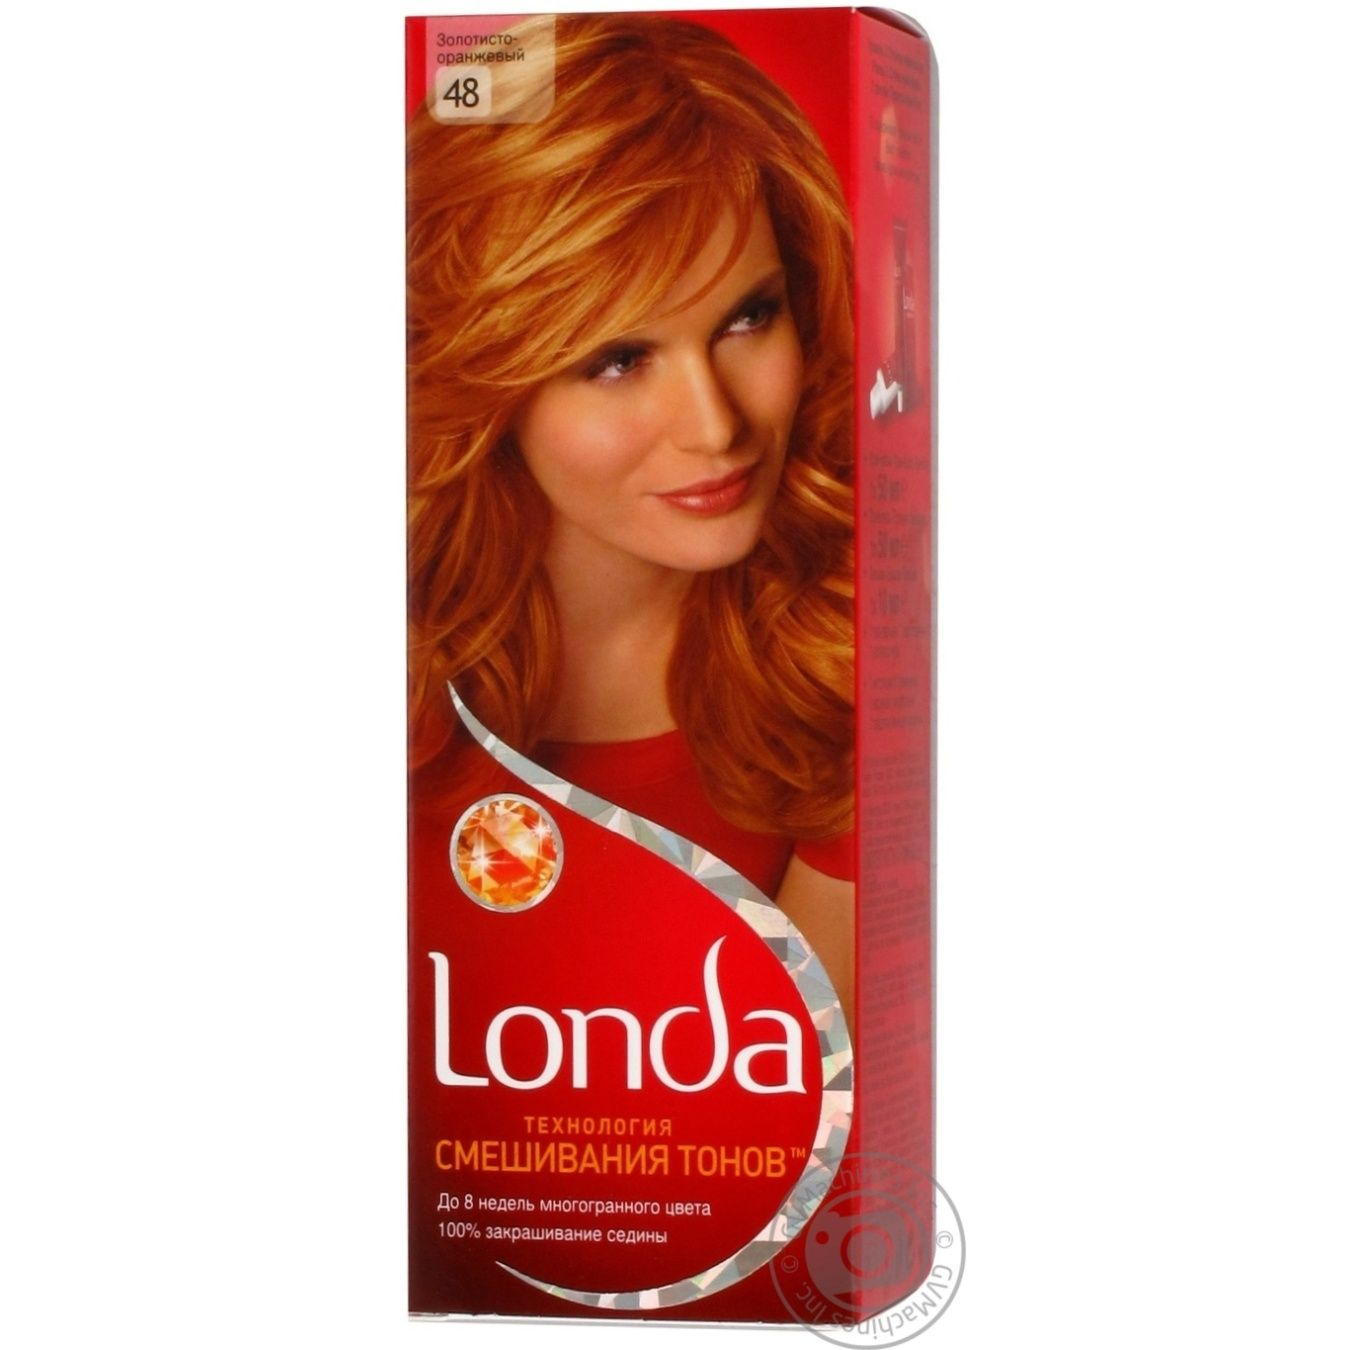 Fall S Favorite Flavor Pumpkin E Hair Color Is Perfect For Light Skin With Peachy Or Golden Undertones Think Rachel Mcadams Her Soft Coppery